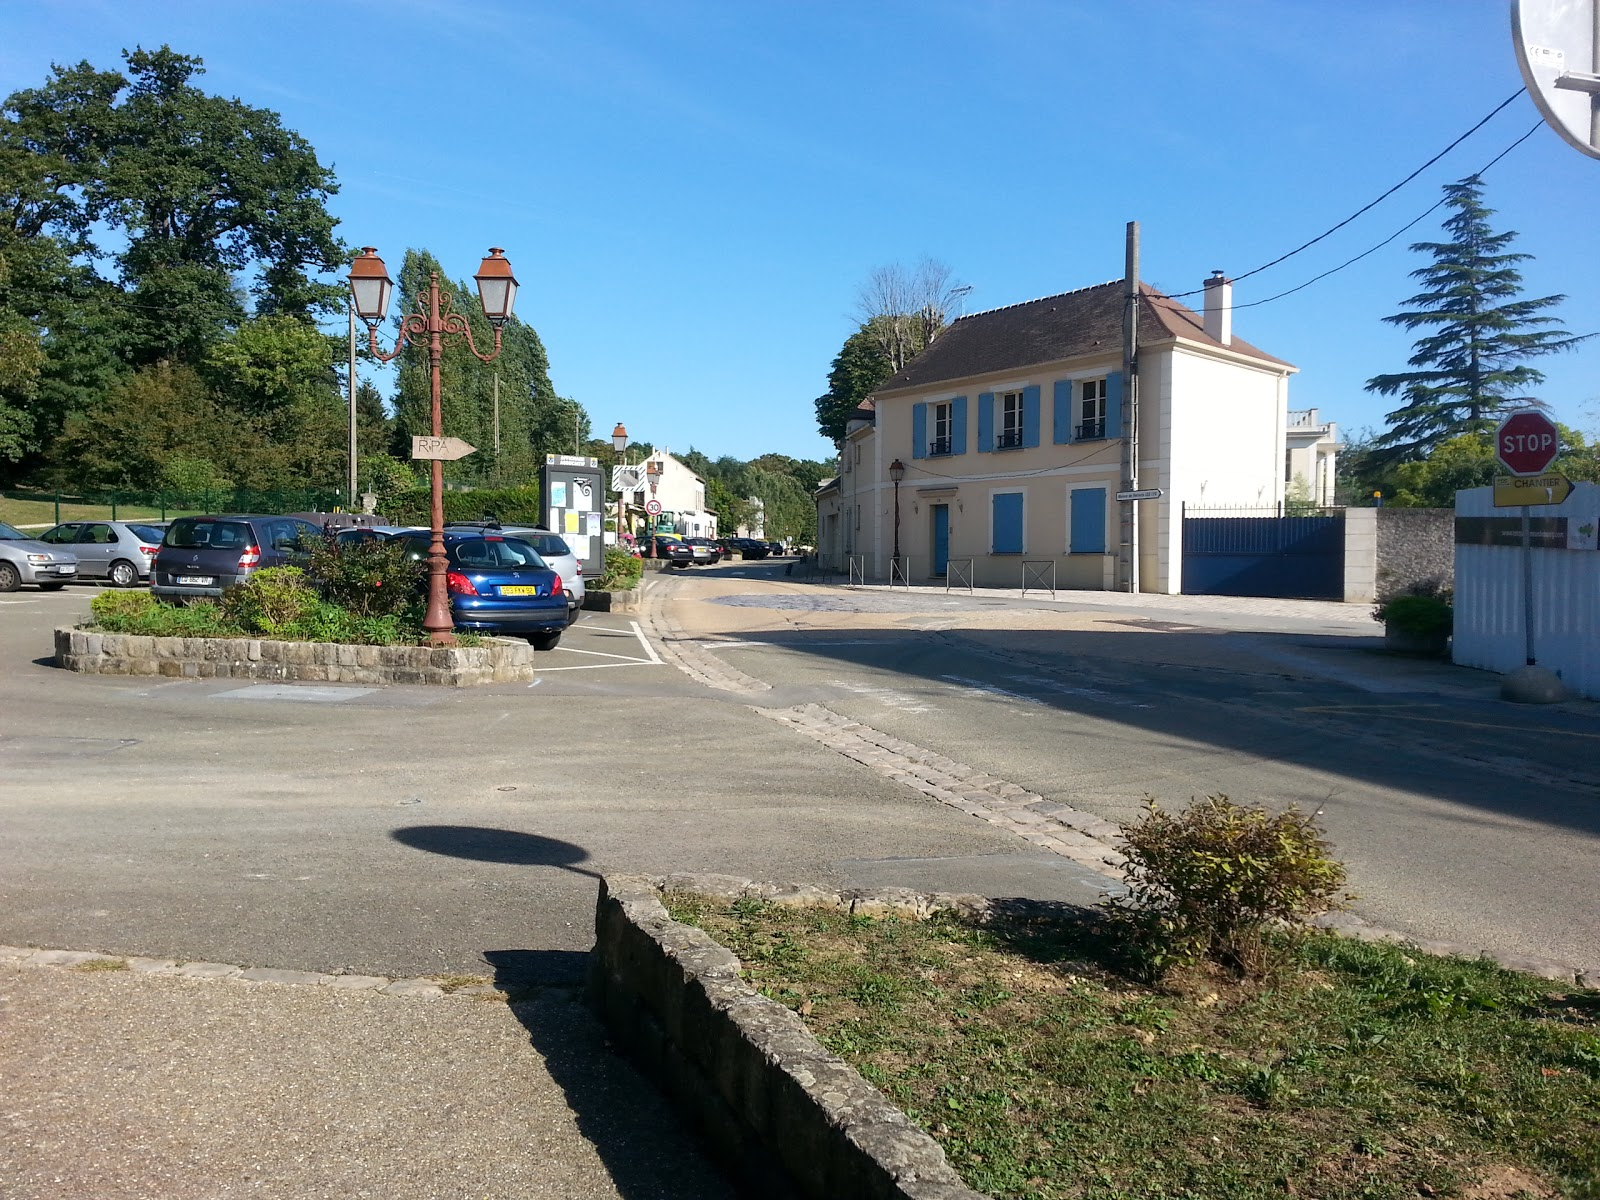 Le chesnay yvelines qu ver y d nde dormir for Lieux touristiques yvelines